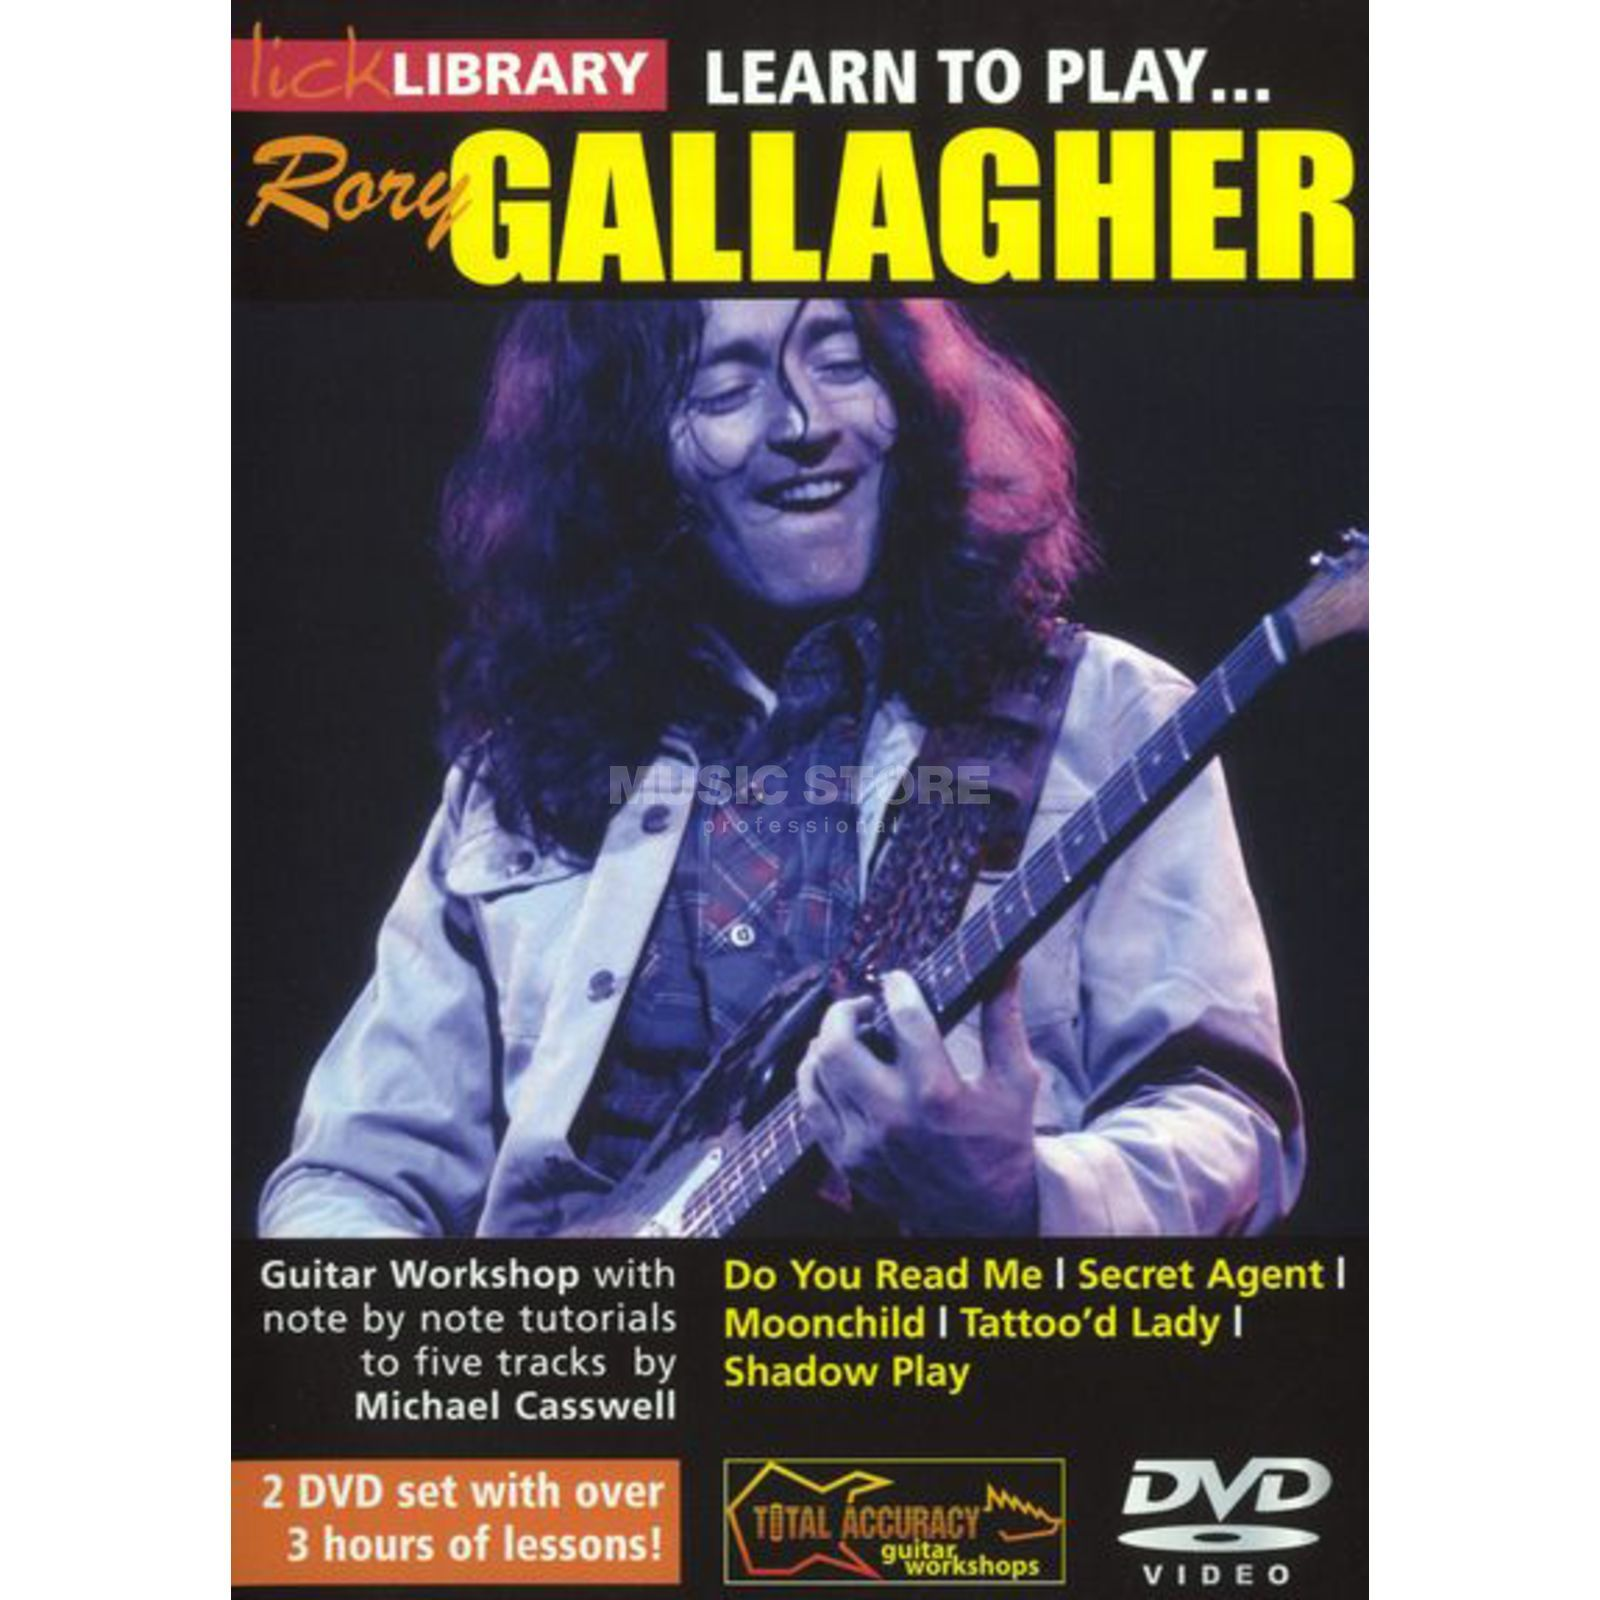 Roadrock International Lick Library: Learn To Play Rory Gallagher DVD Produktbillede